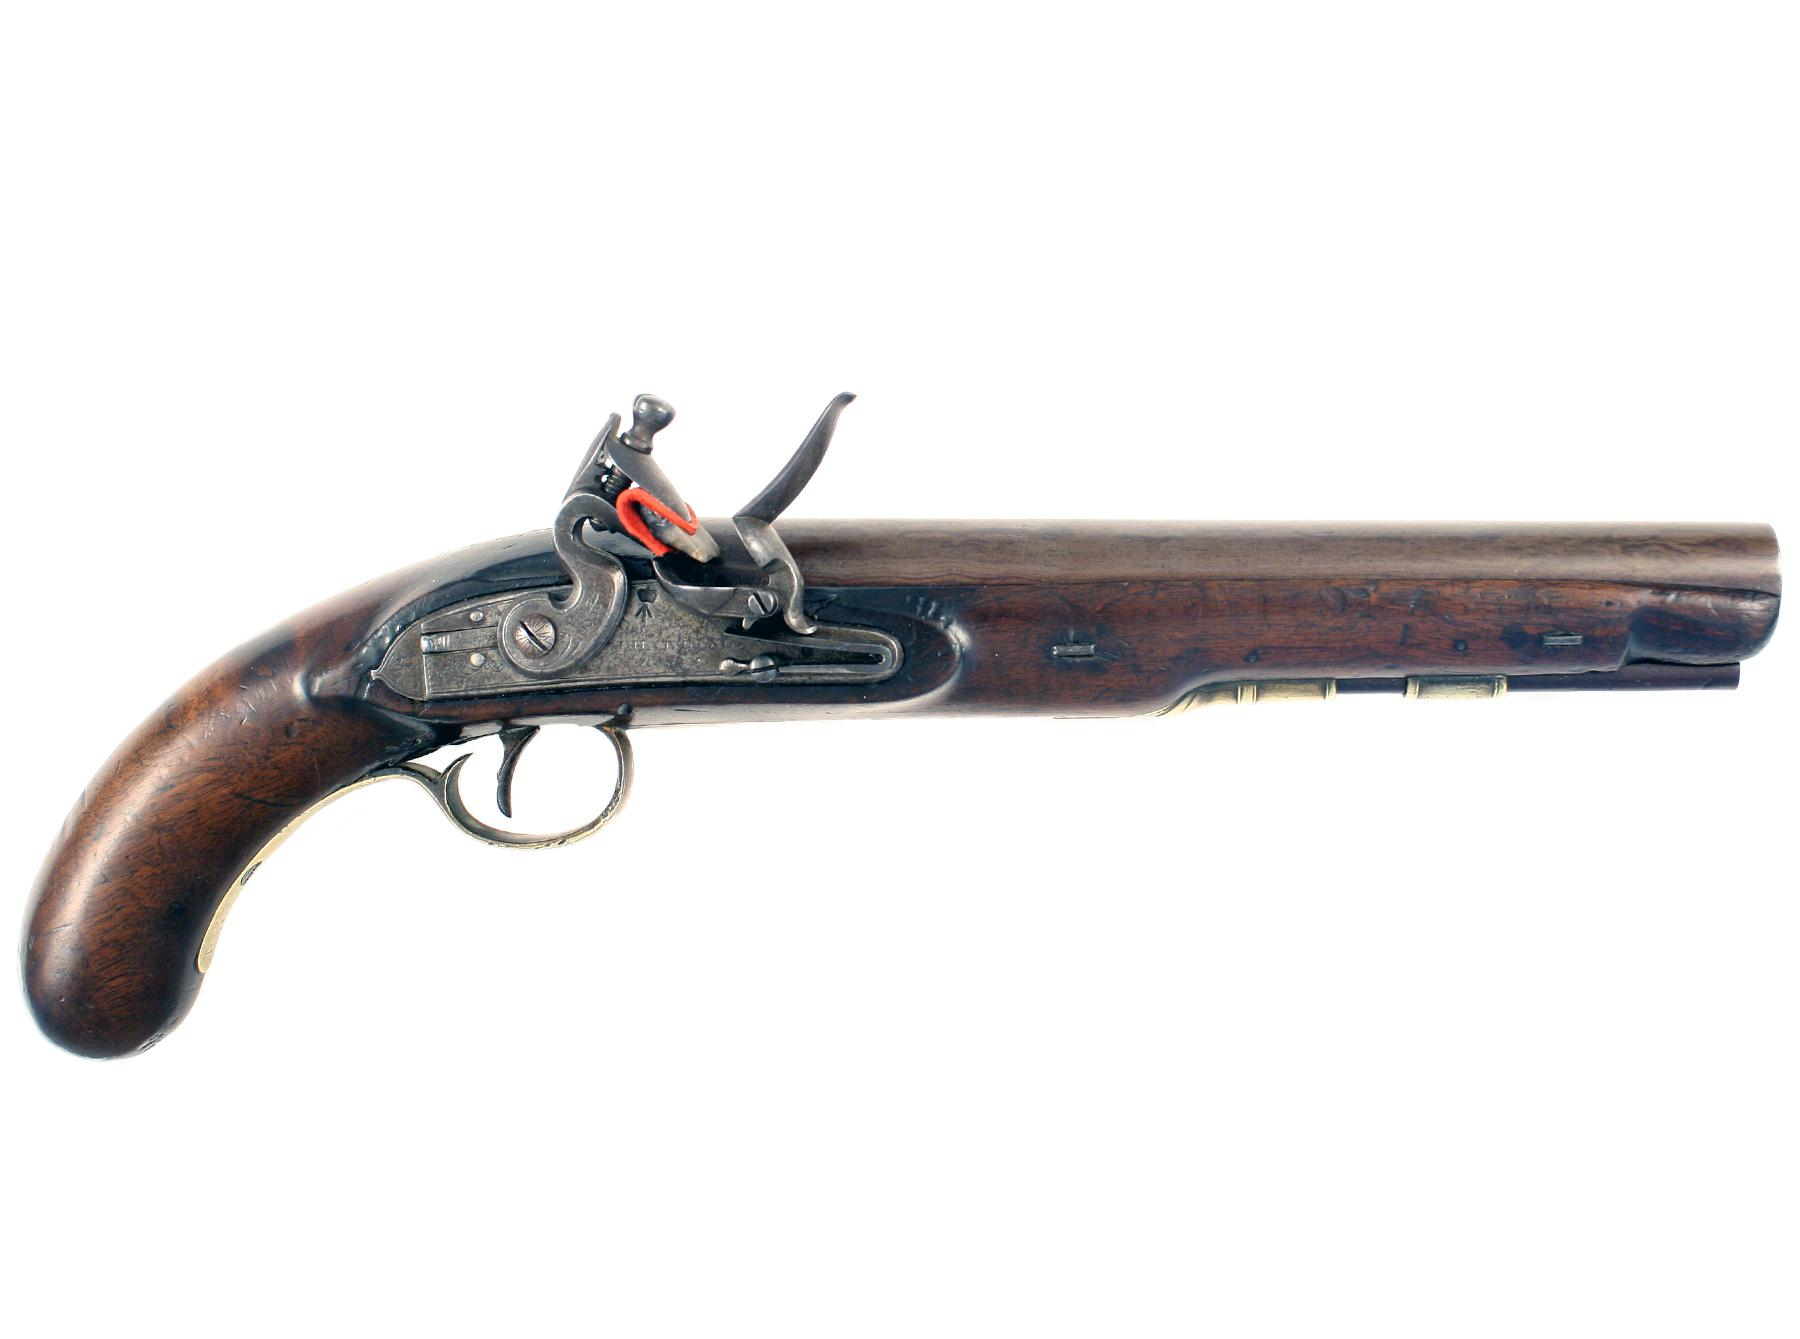 A Scarce Flintlock 'Post Boys' Pistol